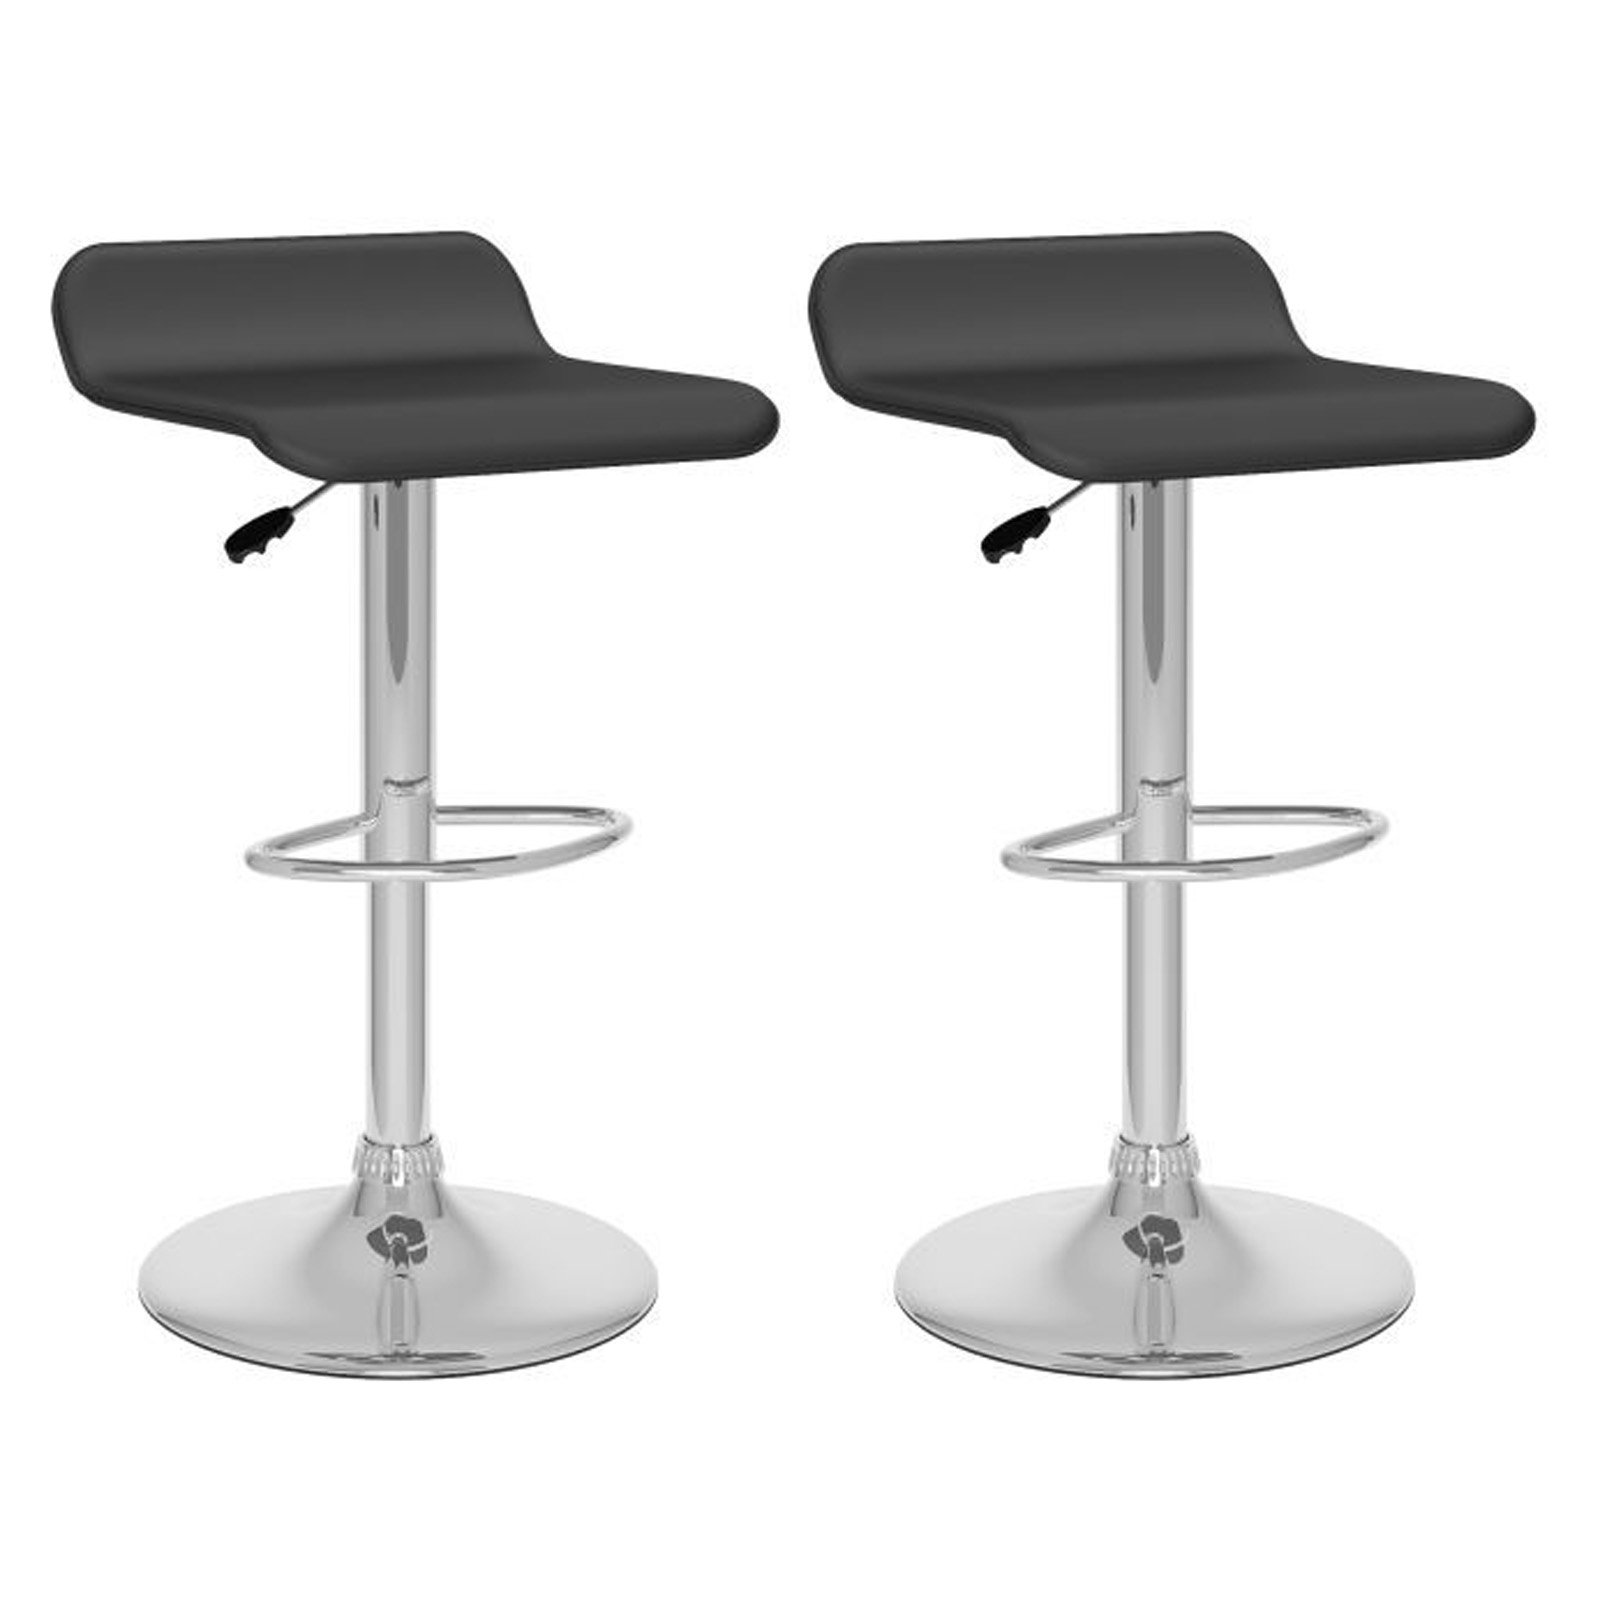 CorLiving Curved Adjustable Faux Leather Barstool, Set of 2